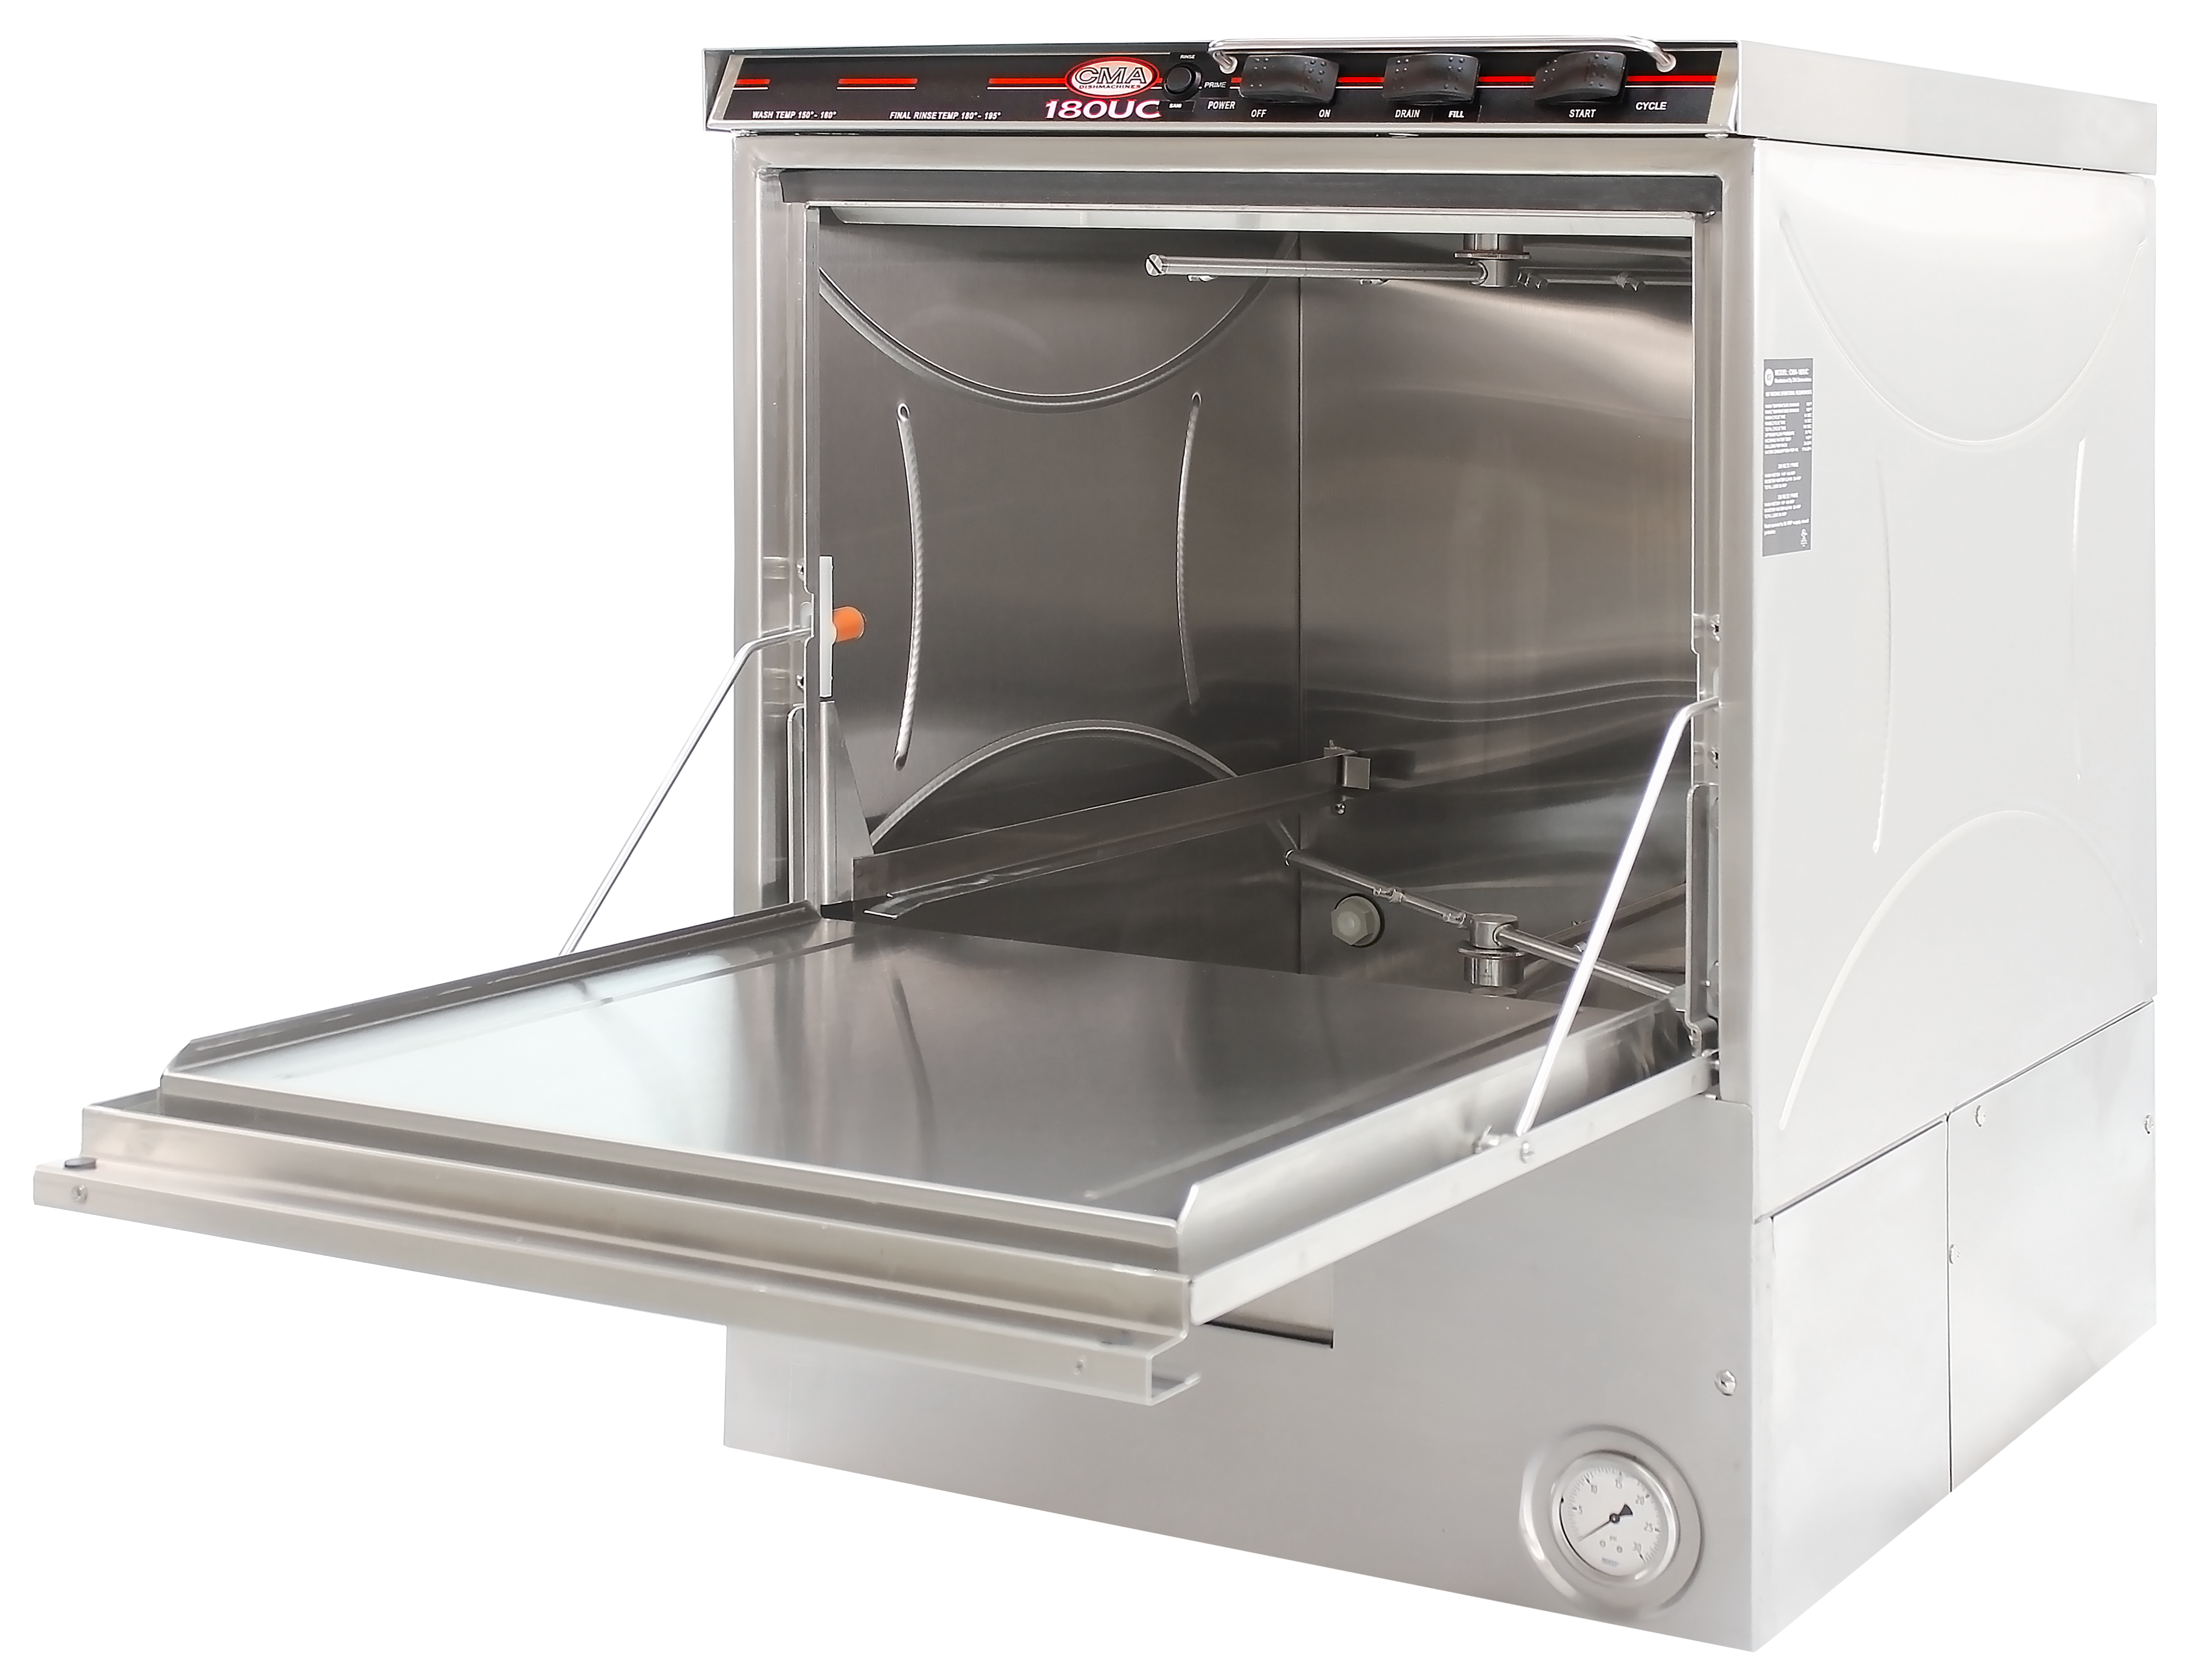 CMA Dishmachines 180UC dishwasher, undercounter